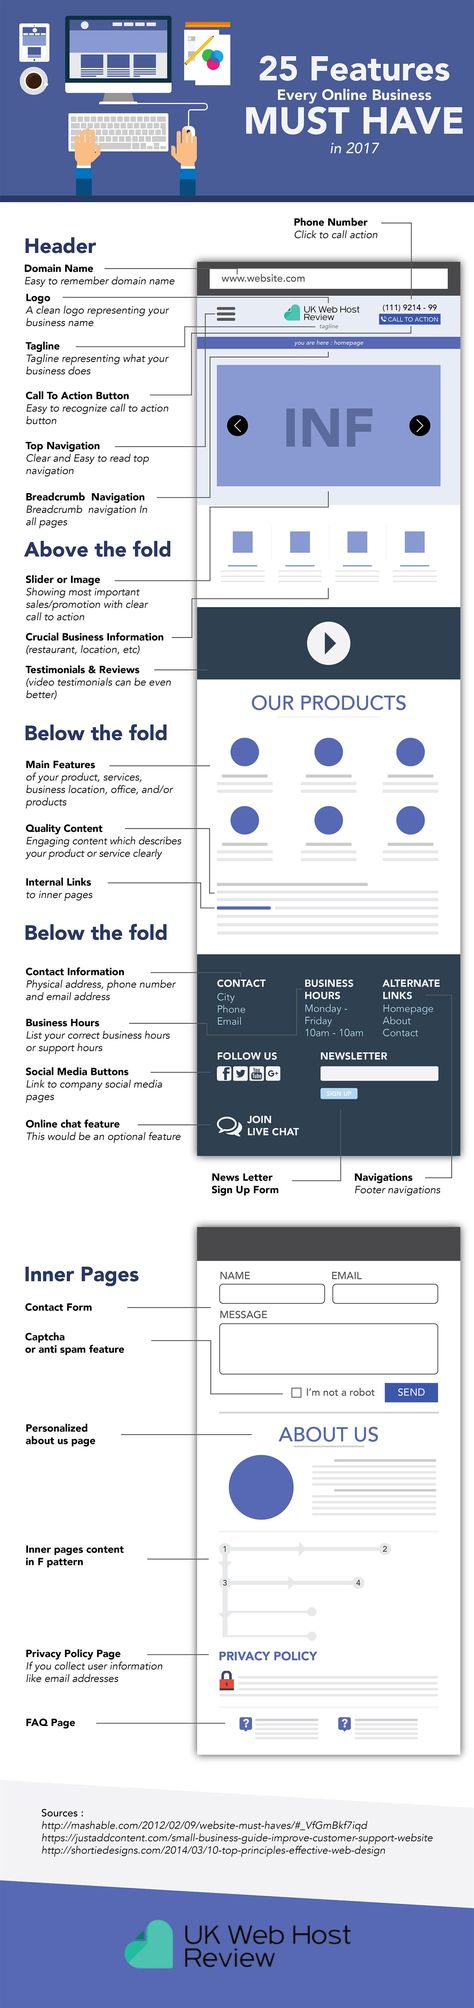 25 Features Every Business Website Must Have in 2017 (Infographic)